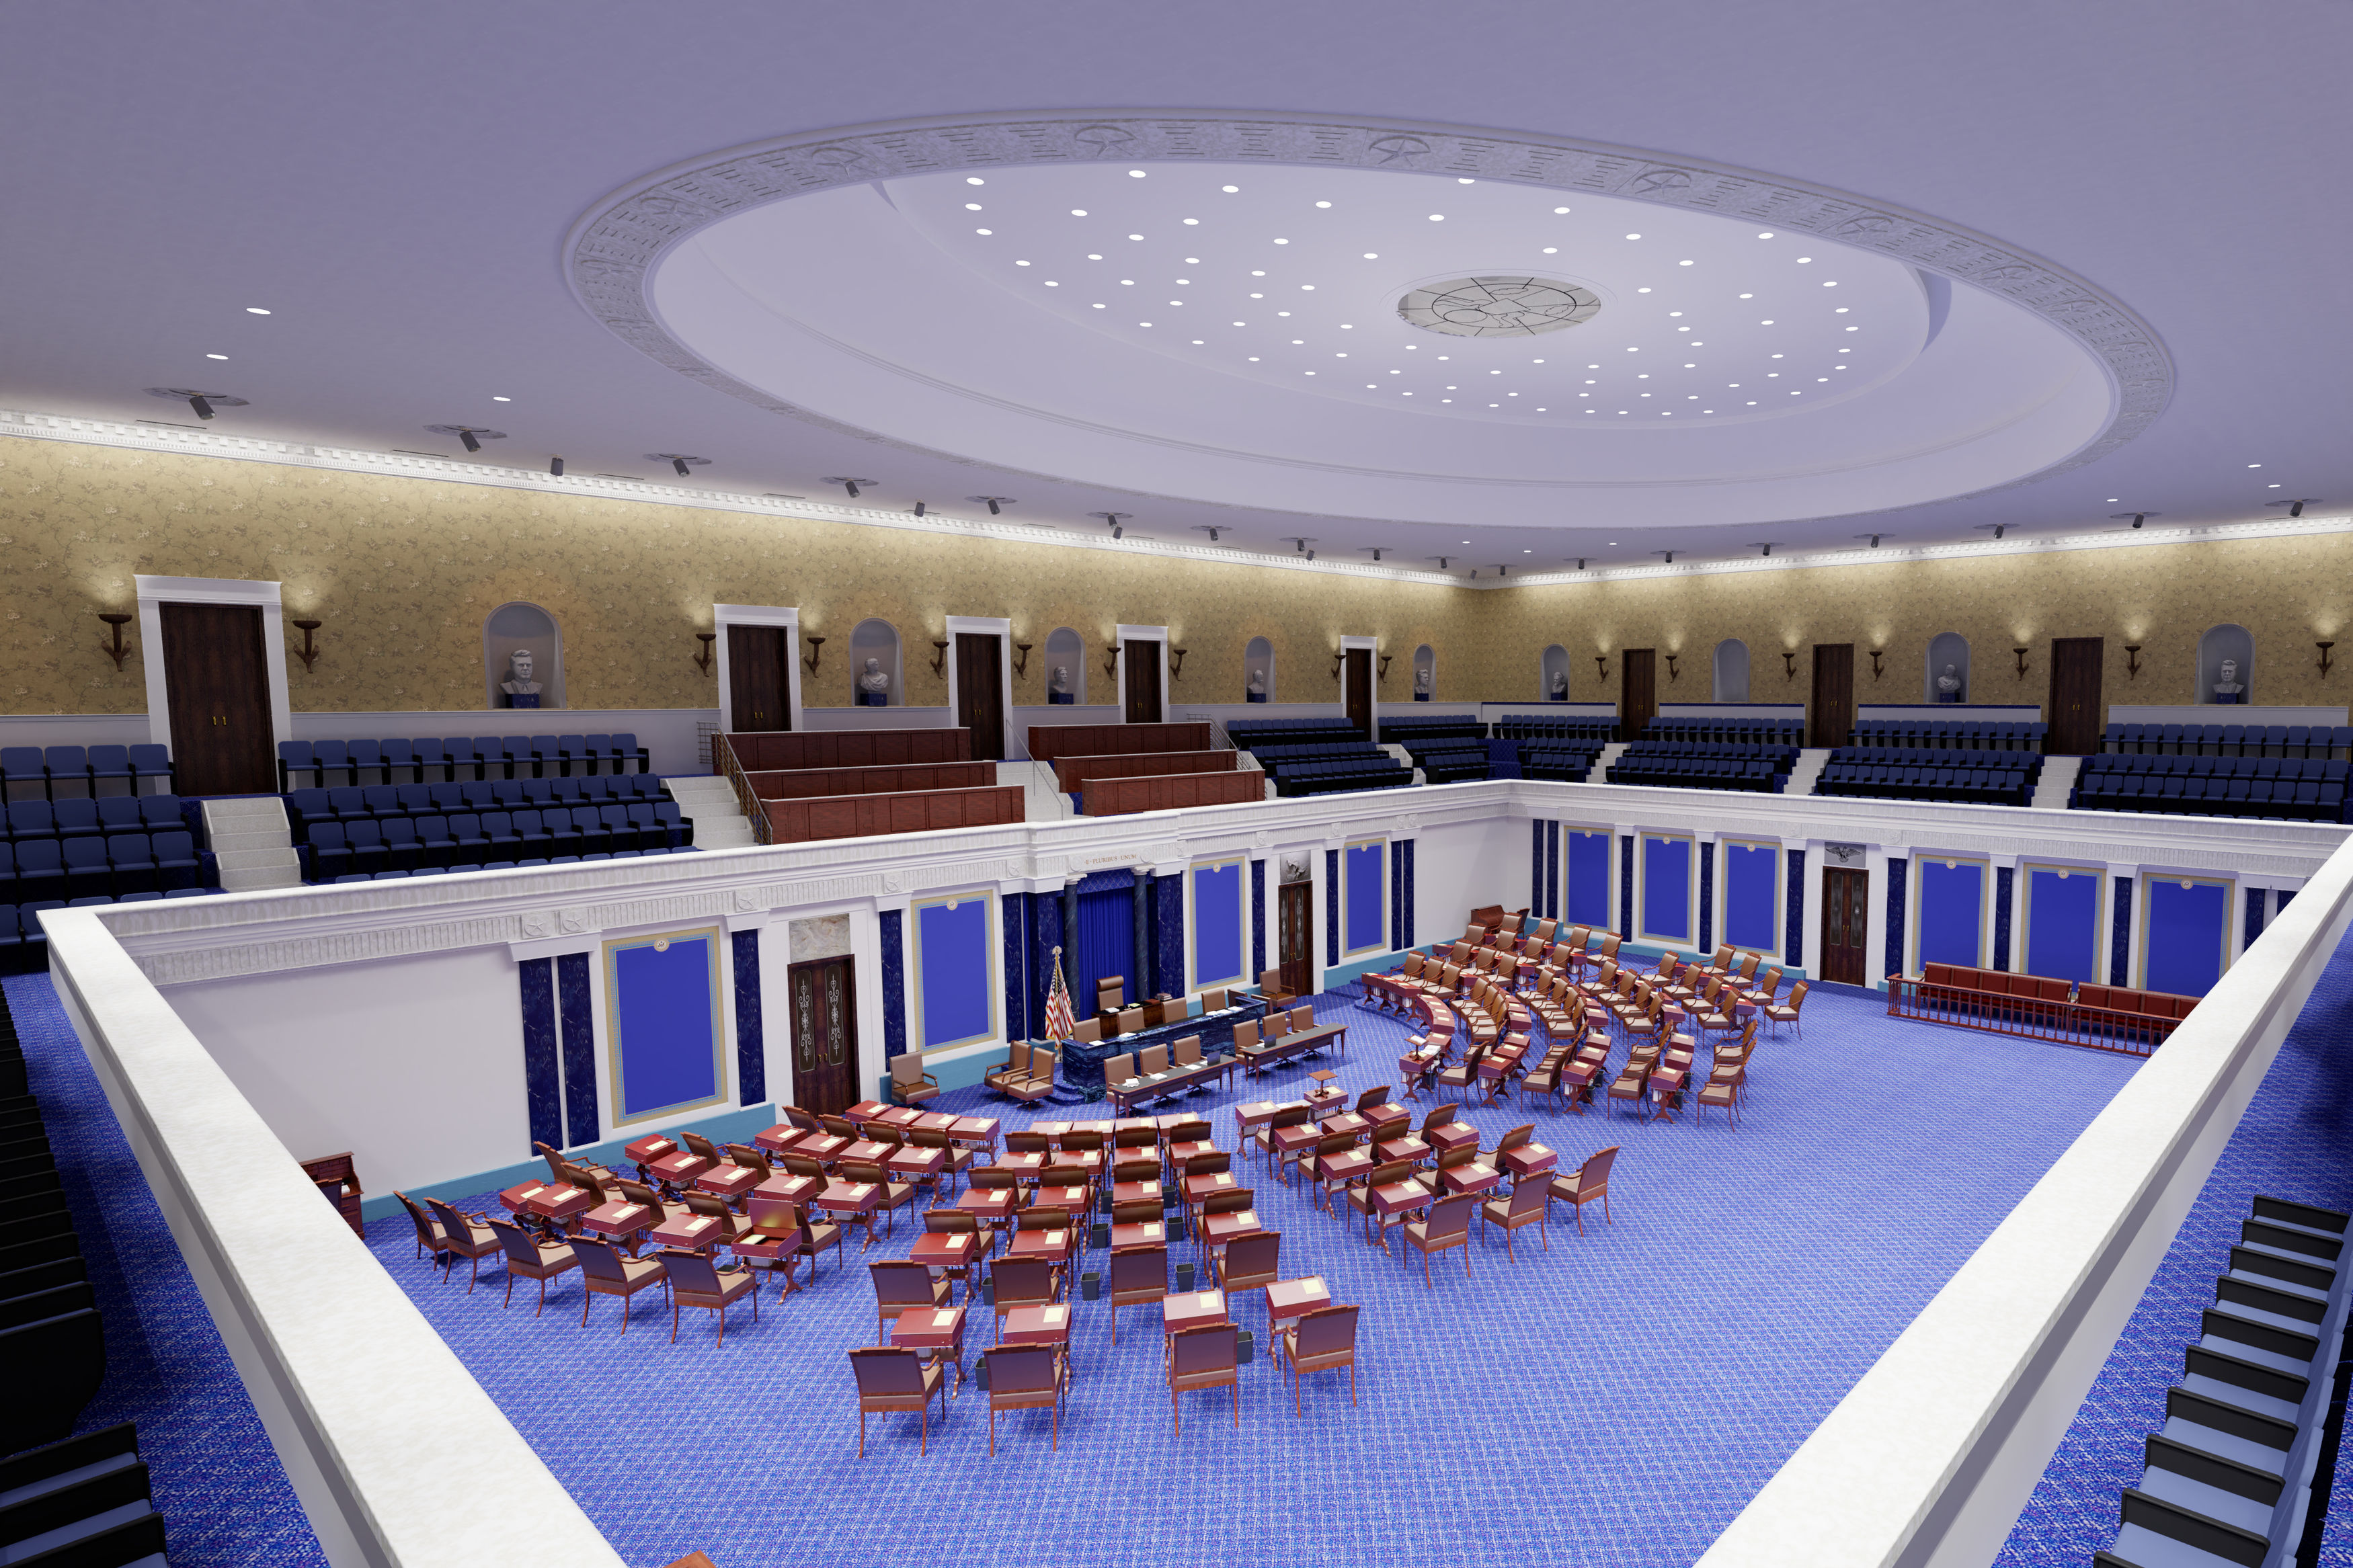 Senate-chamber-tloker-final-rvt-2020-may-07-09-57-59pm-000-view-from-backleftgallery-jpg-3500-3500